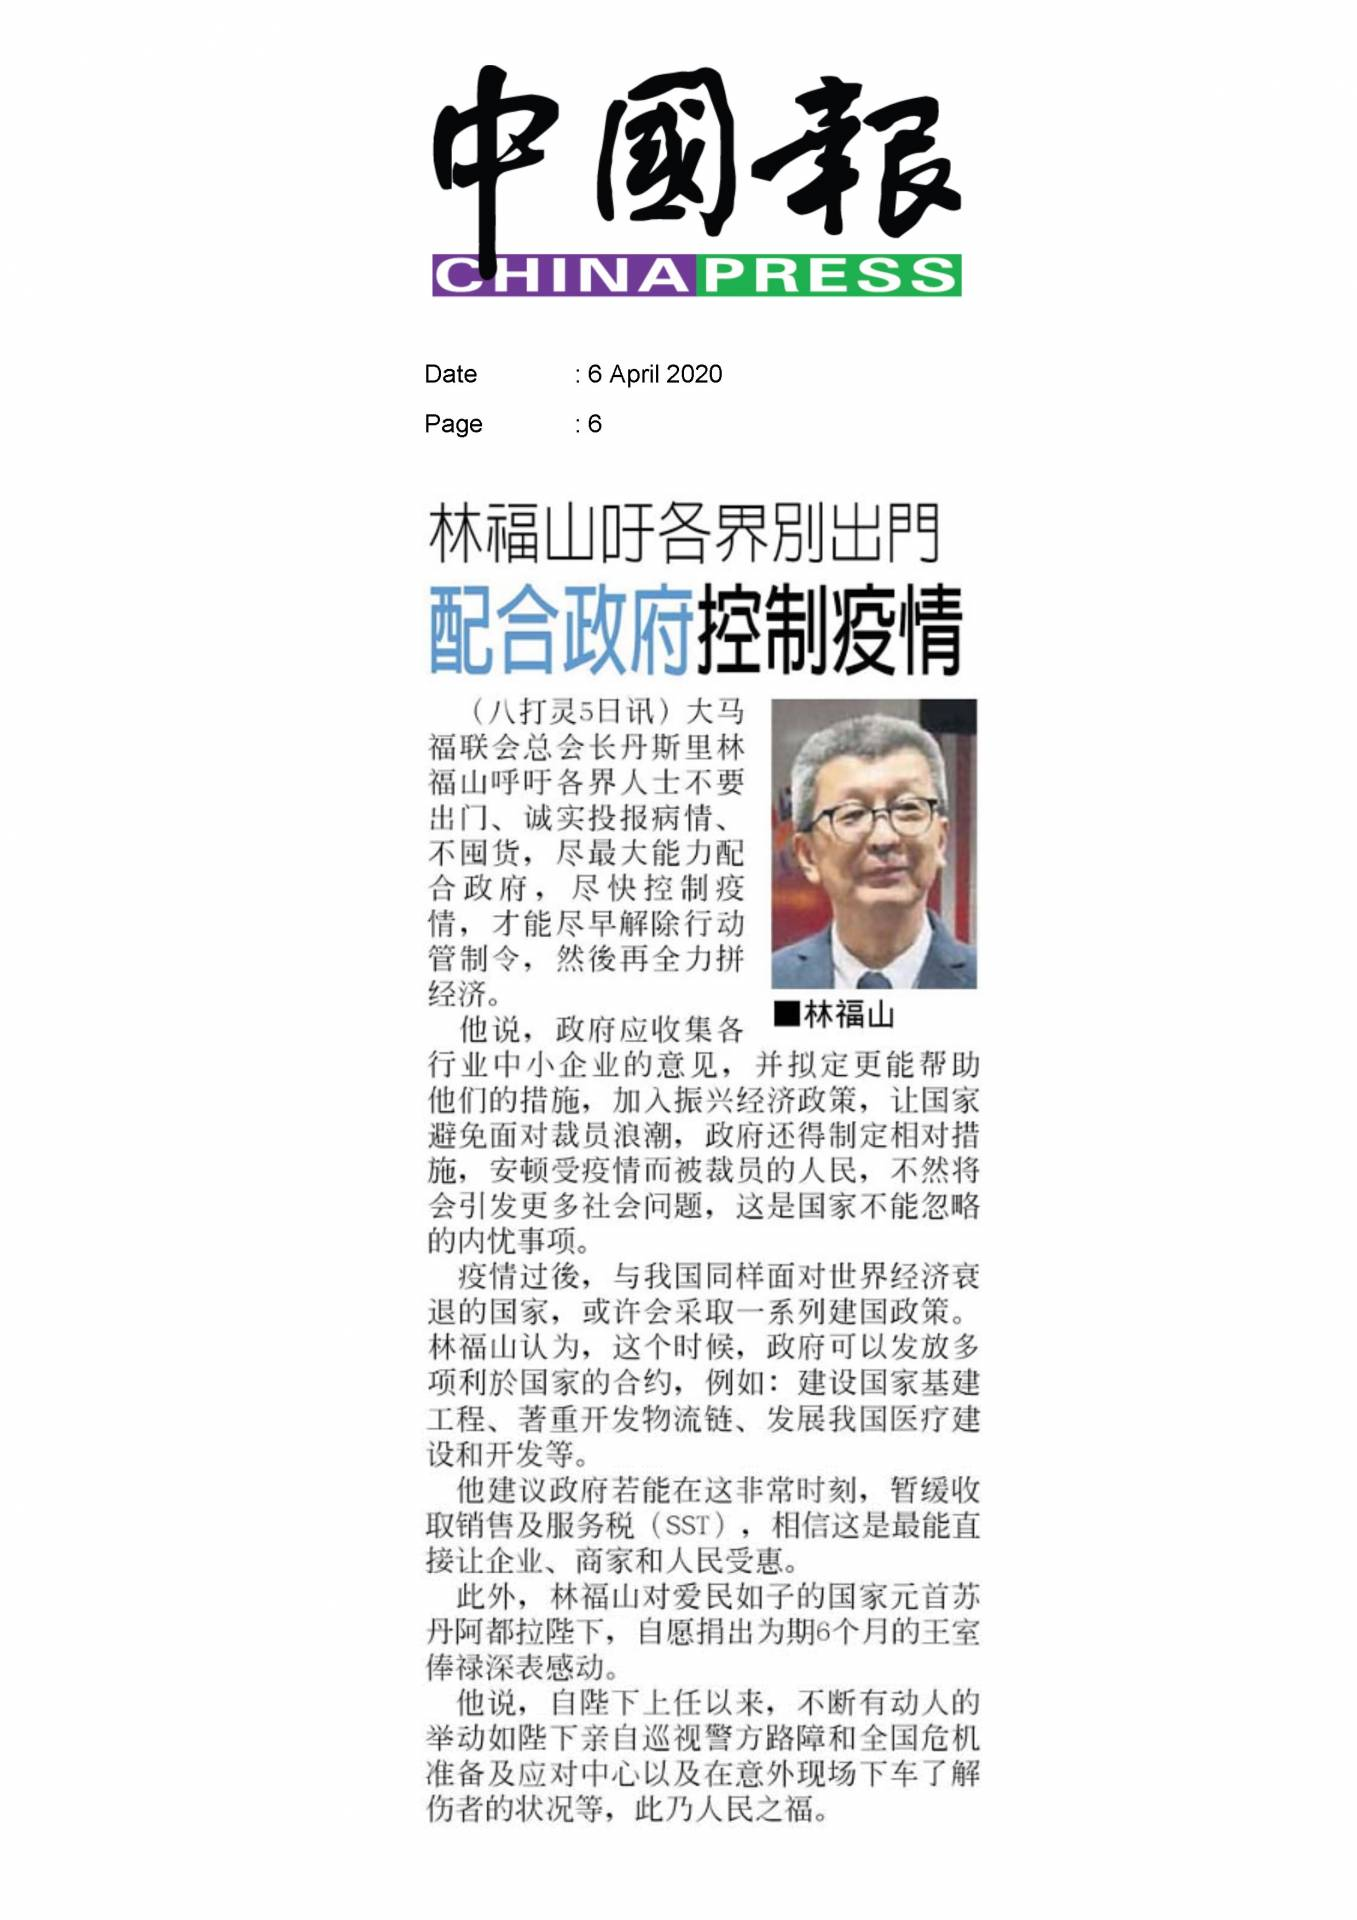 2020.04.06 China Press - Lim Hock San urges public to comply with government to help control outbreak